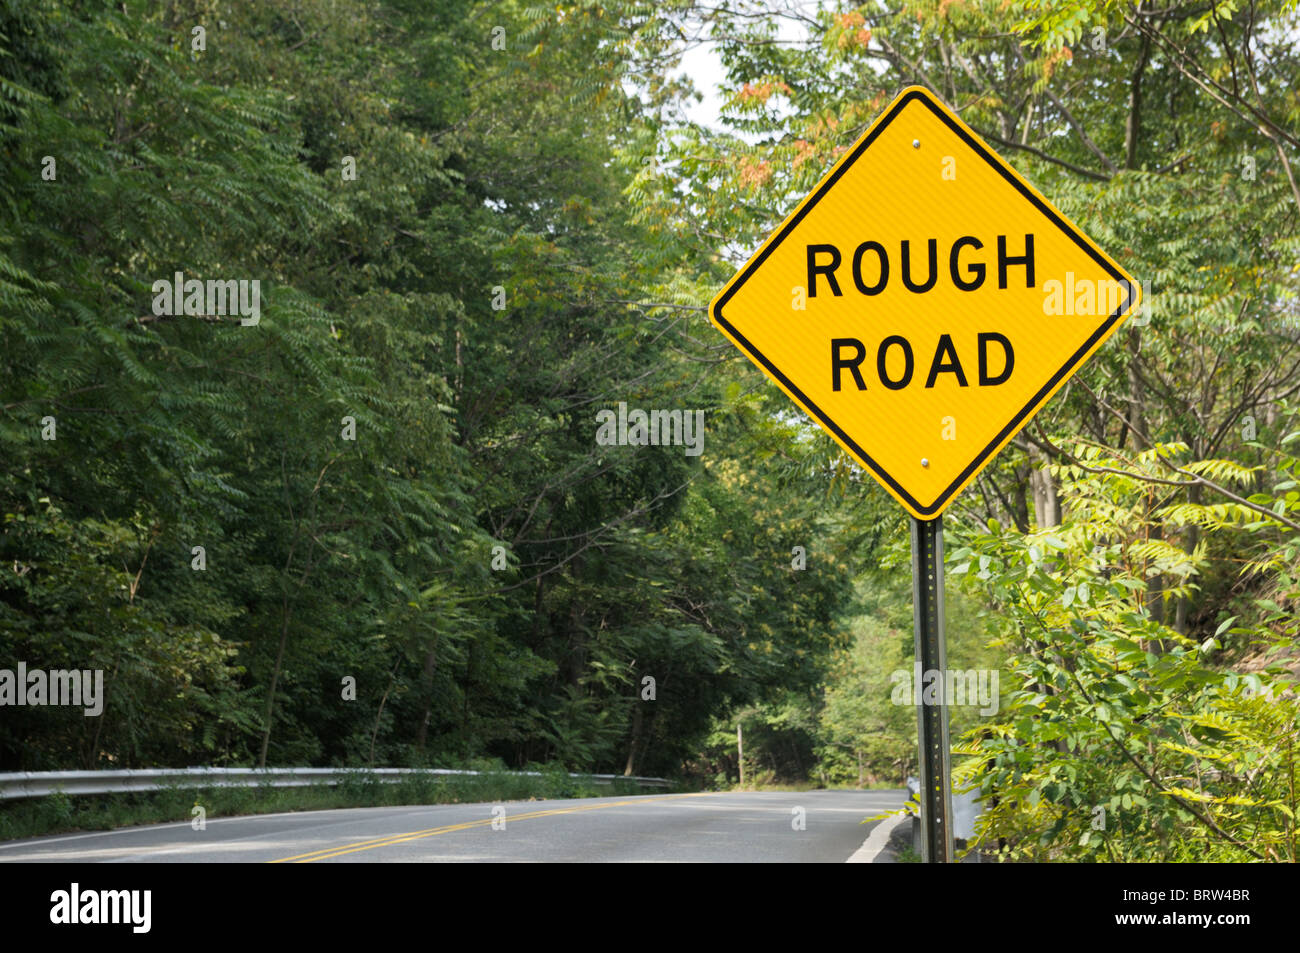 Rough Road sign - Stock Image